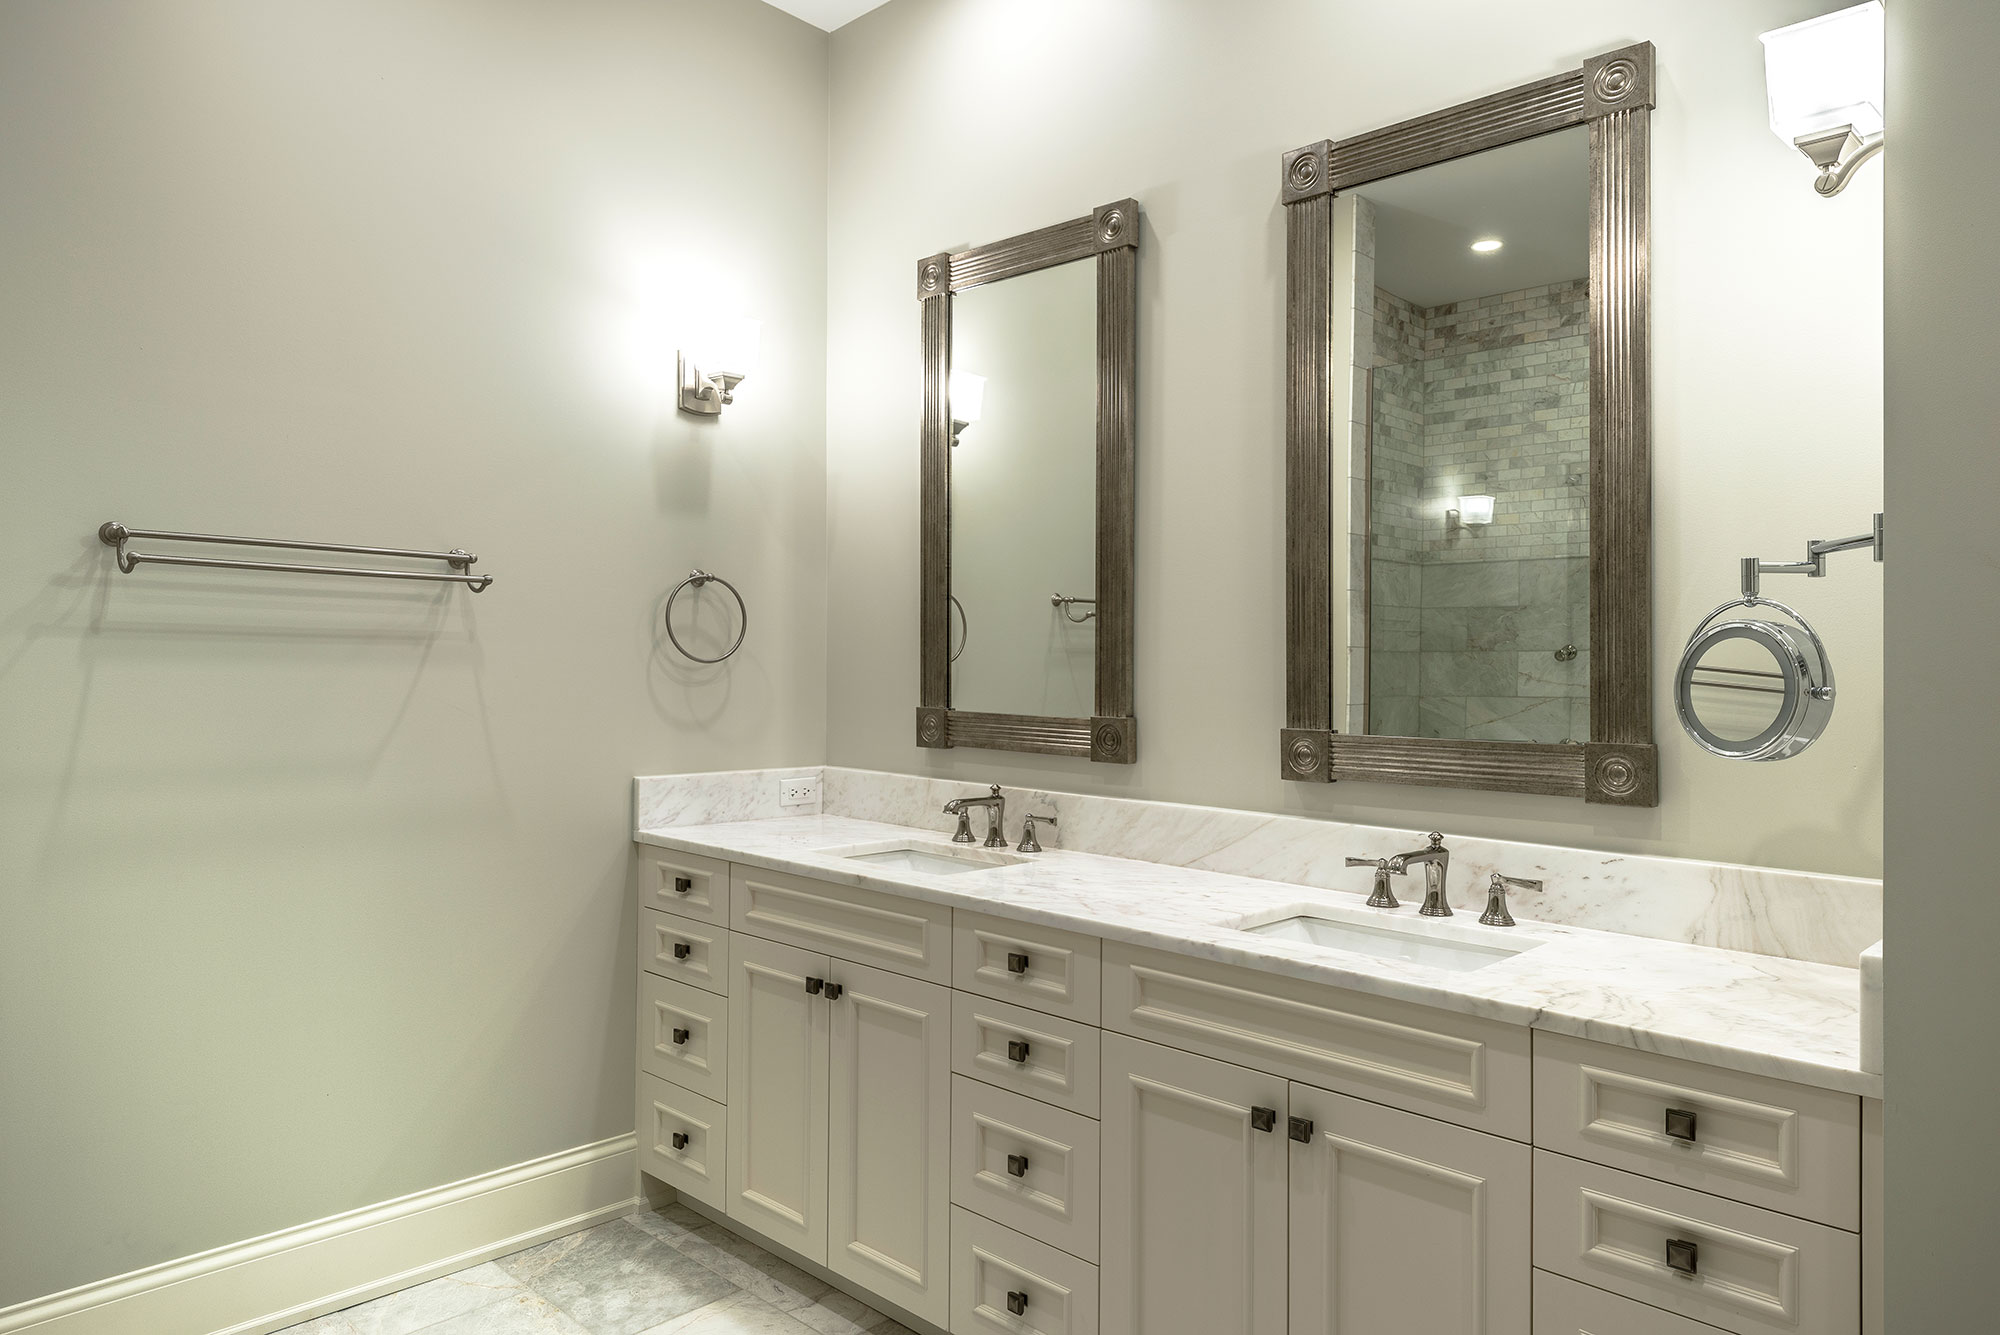 Master Bathroom Vanity And Paint Grade Mdf Door Classic Open